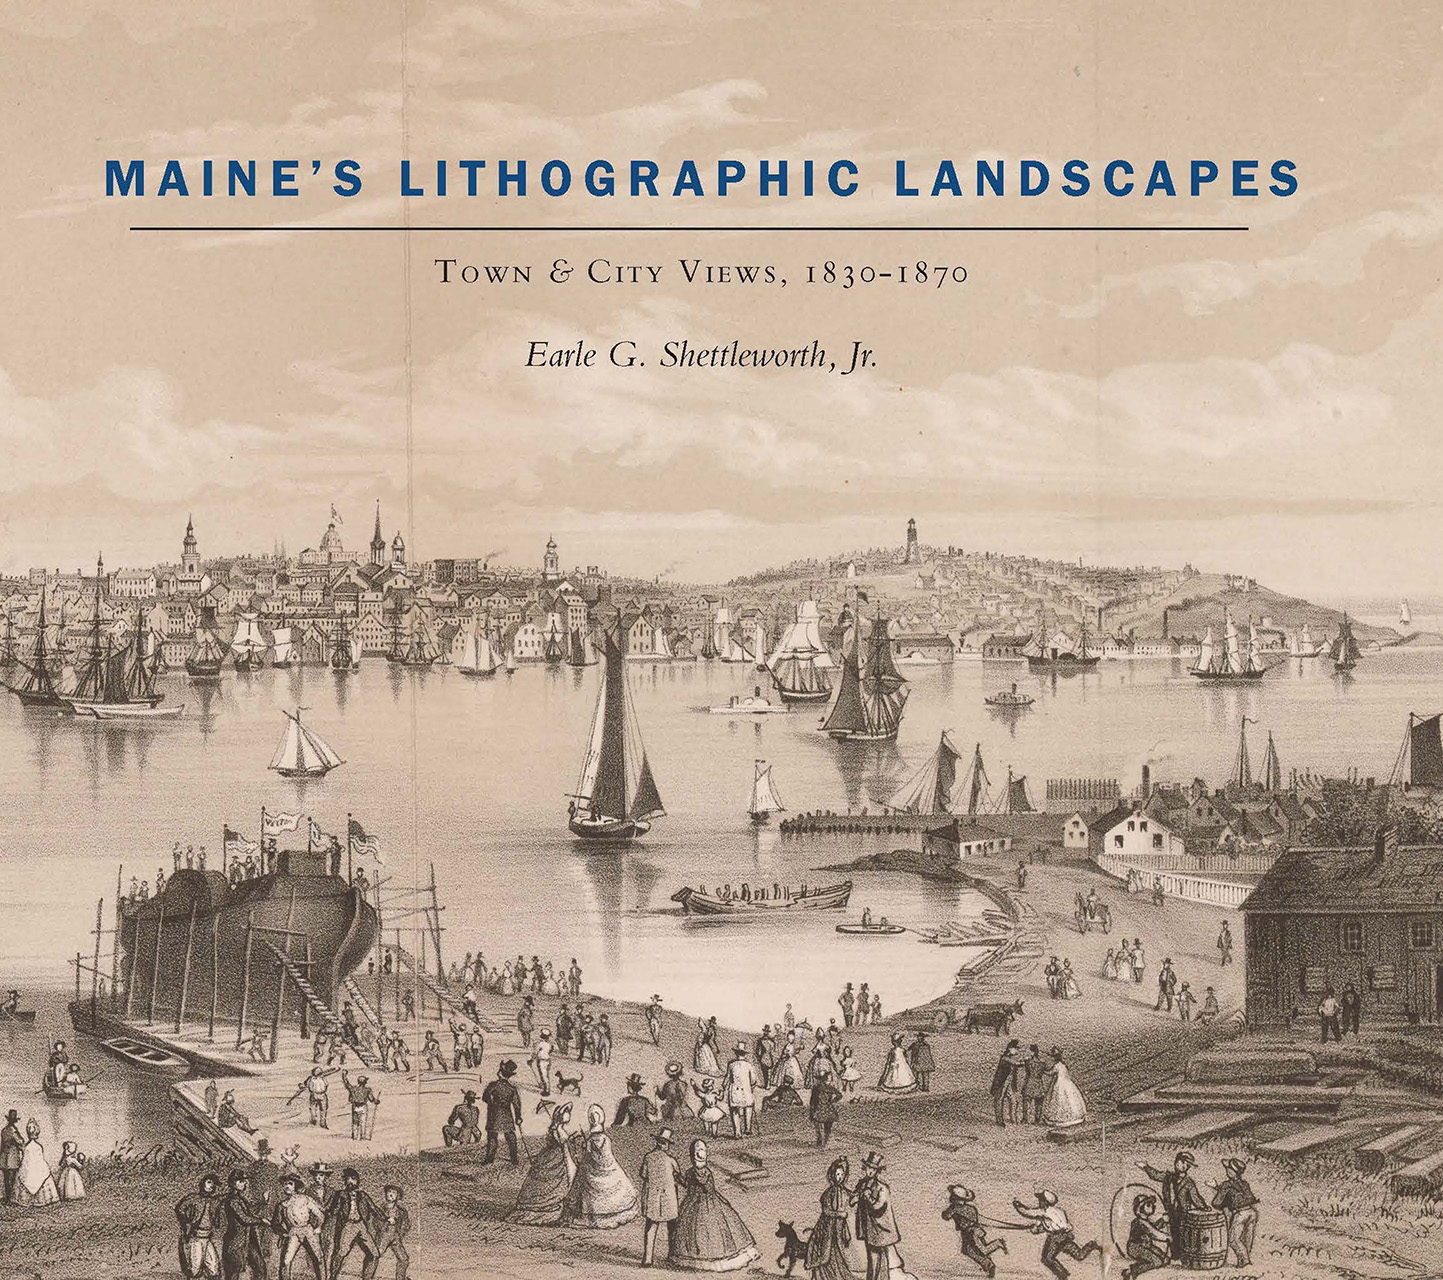 Maine's Lithographic Landscapes: Town and City Views, 1830-1870